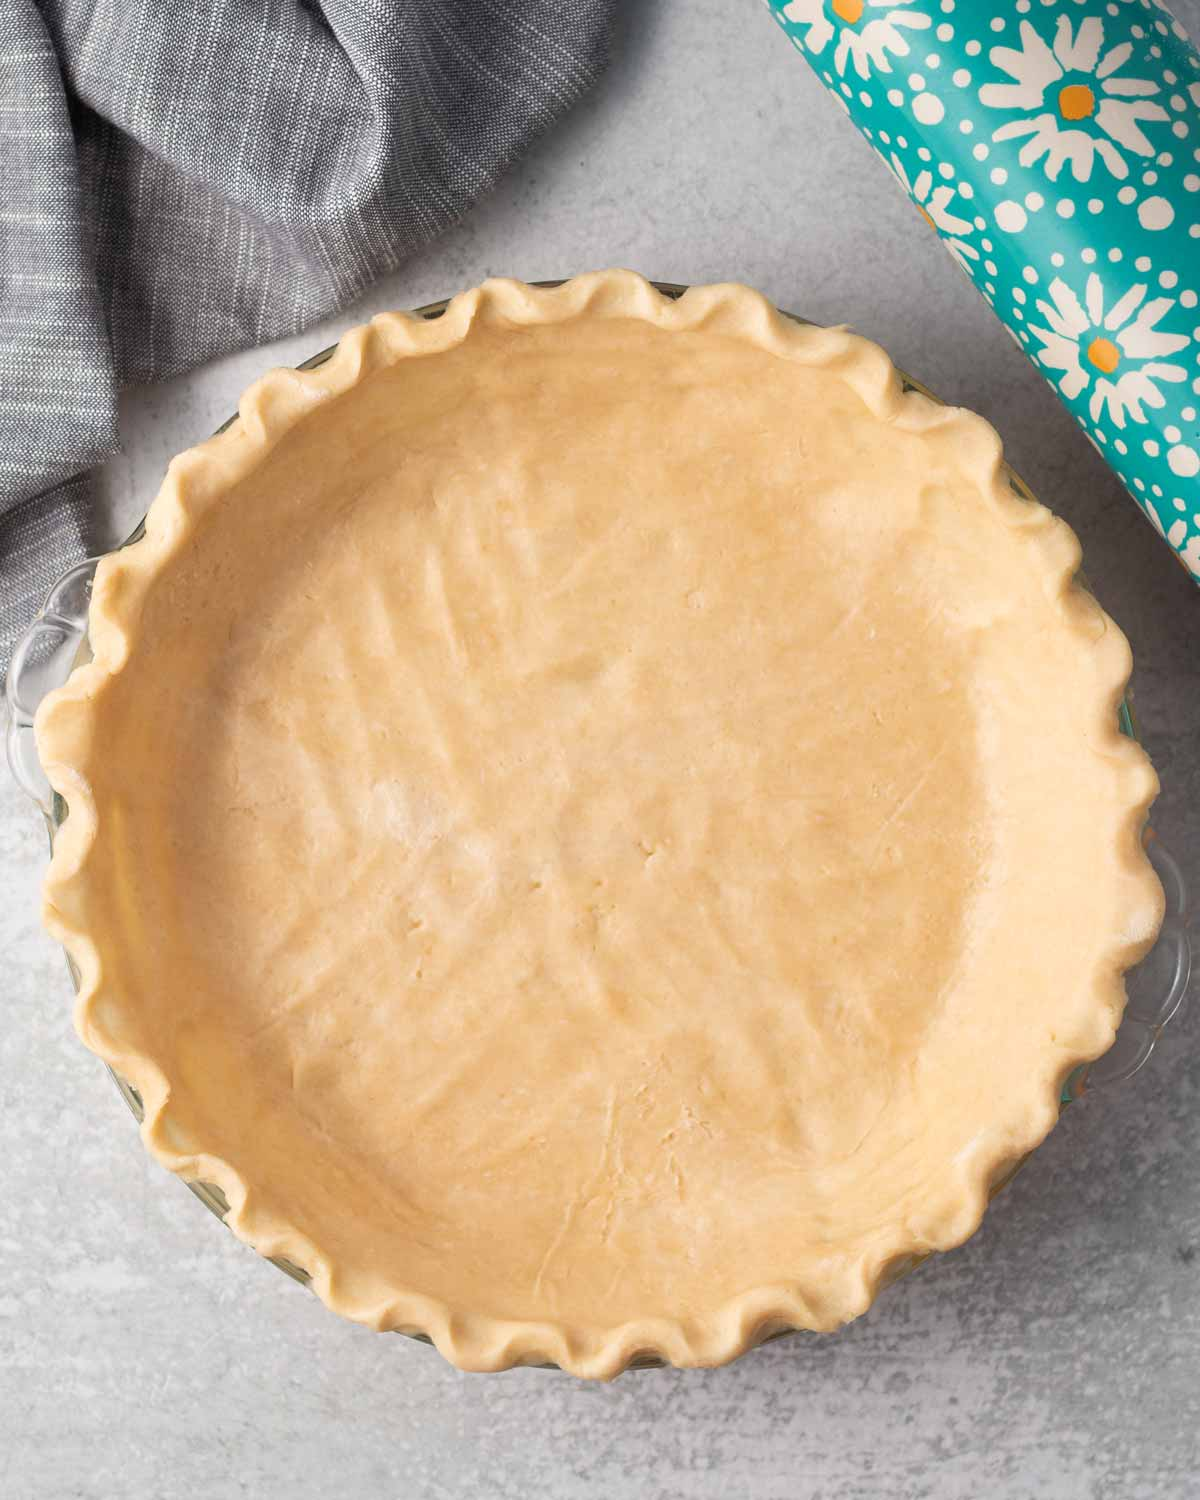 Unbaked pie crust with a scalloped edge. There is a blue rolling pin in the top right corner.